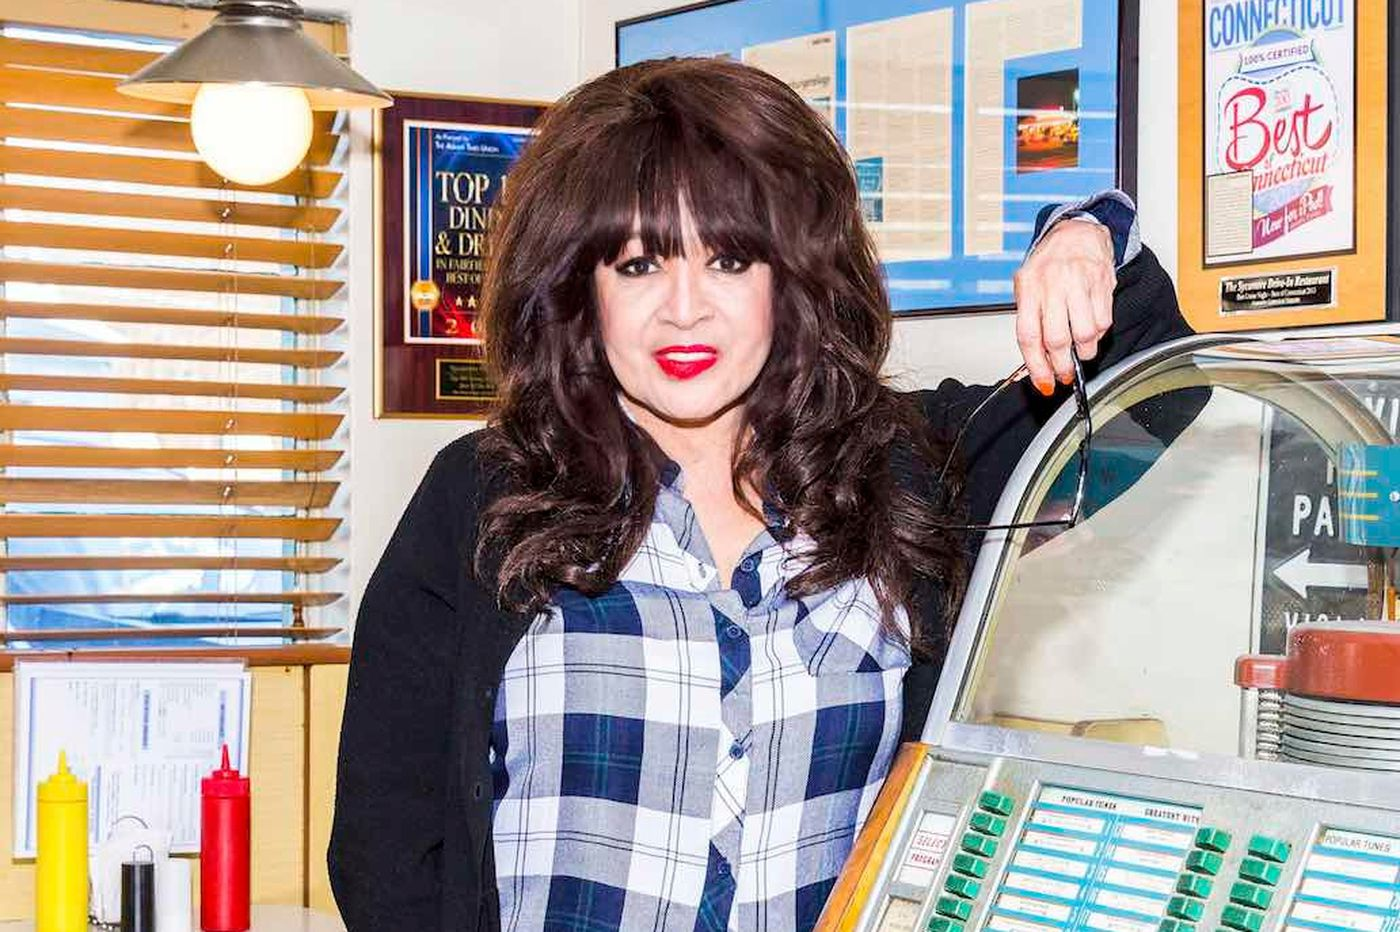 Girl group diva Ronnie Spector wants you to the have the 'Best Christmas Ever'